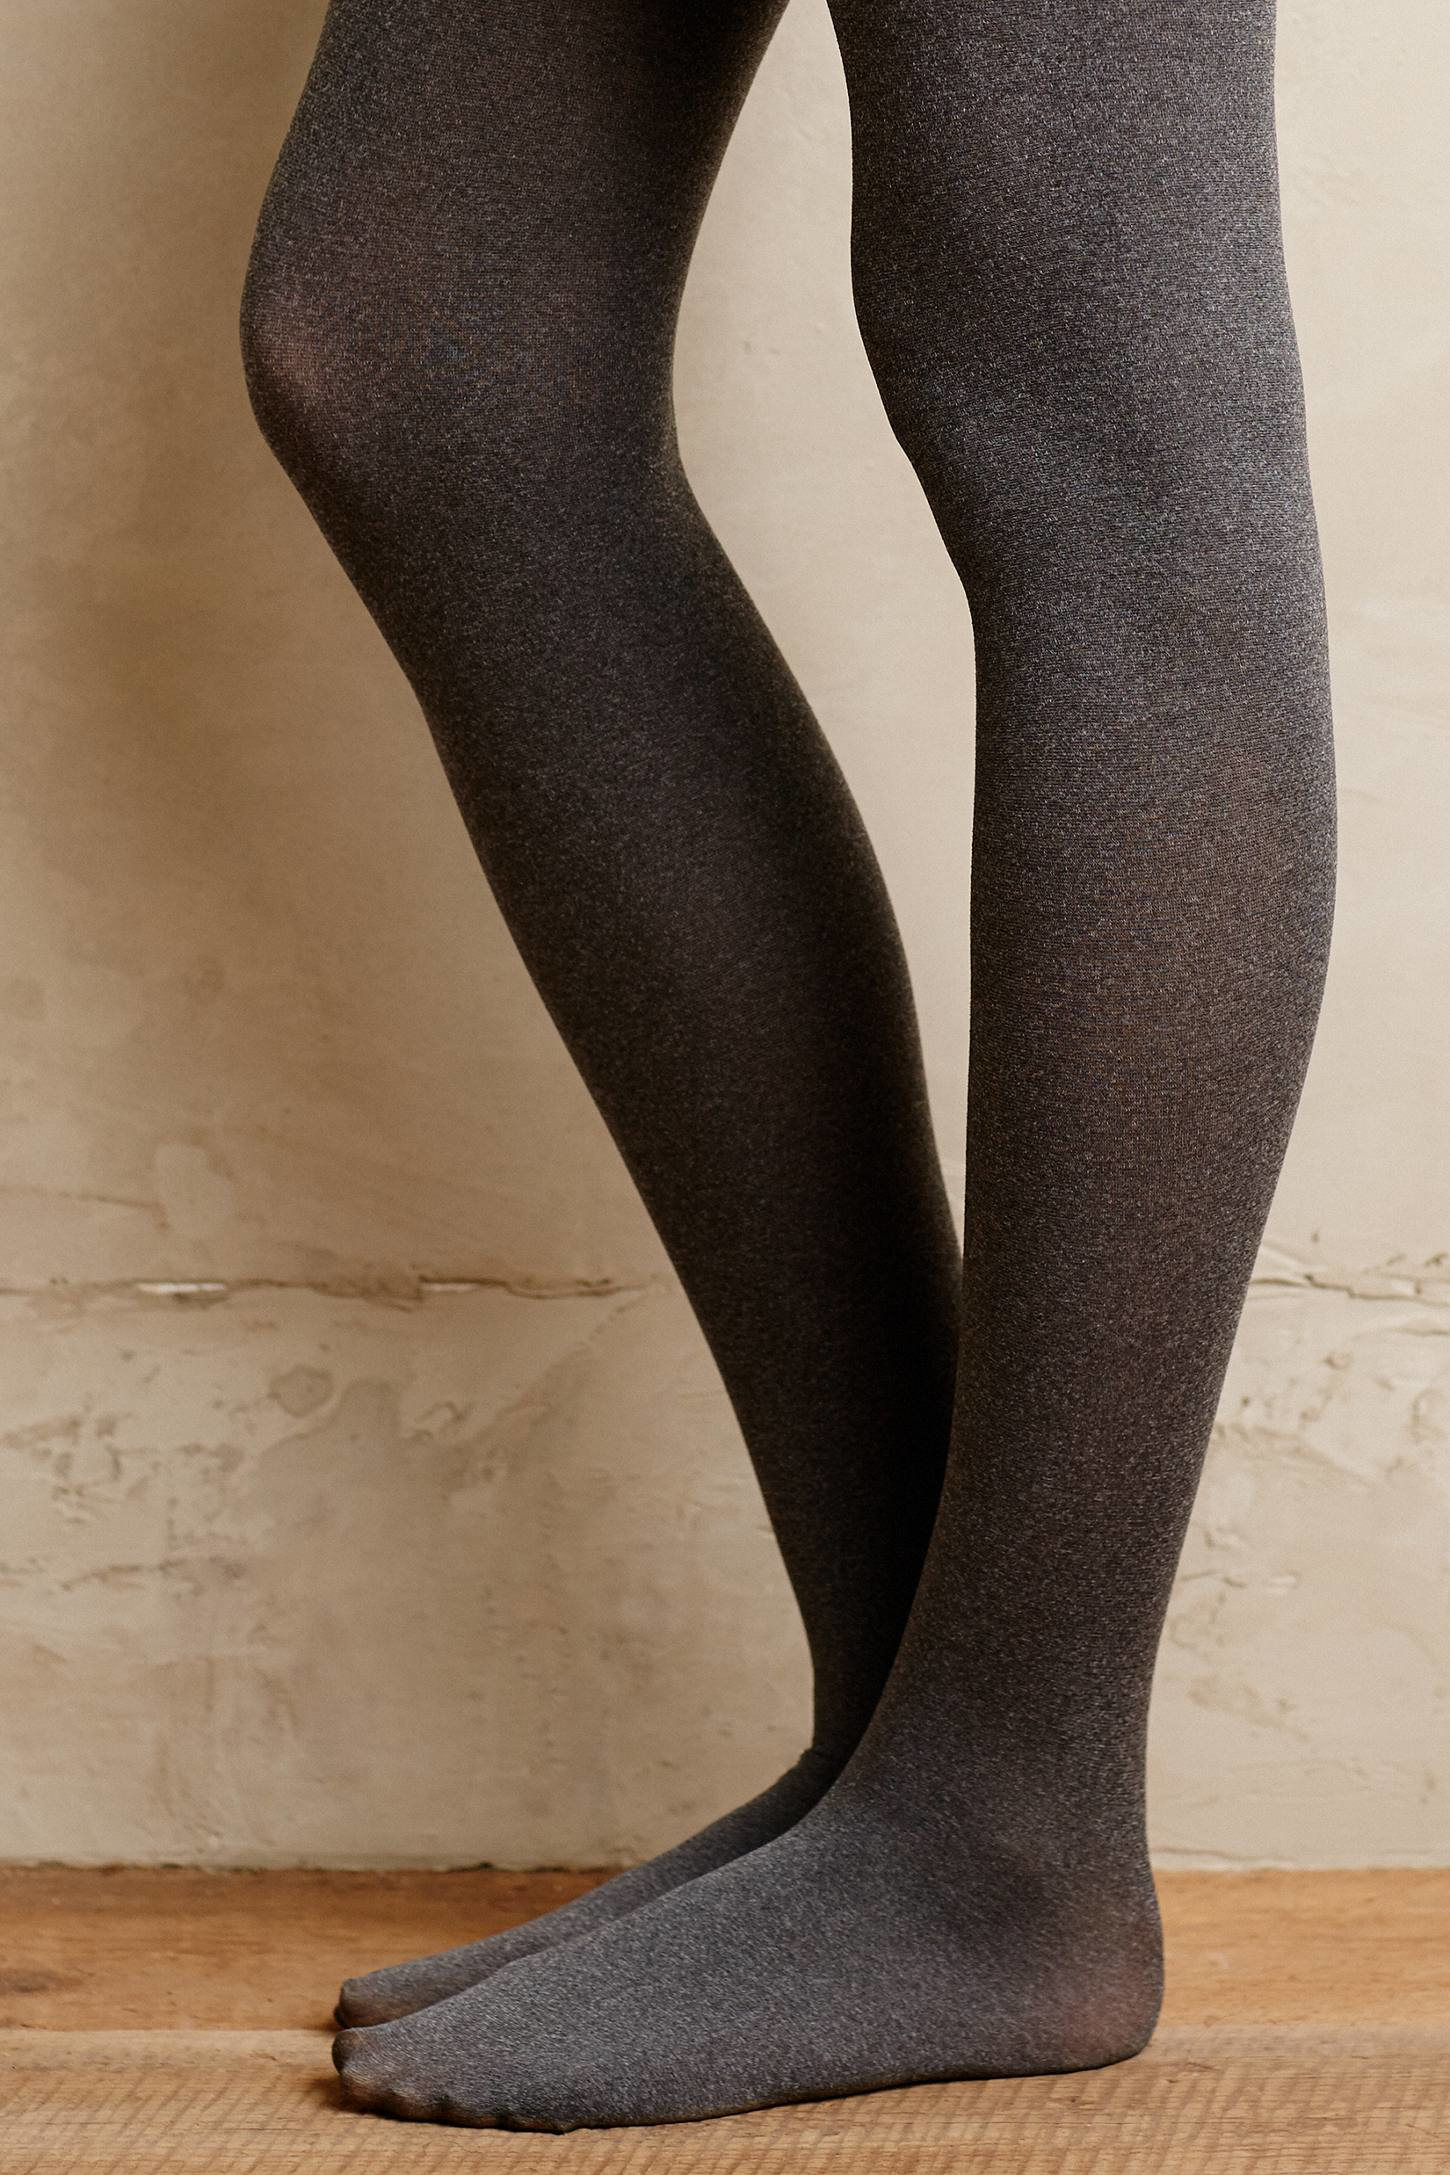 Lyst - Pure + Good Opaque Tights in Gray